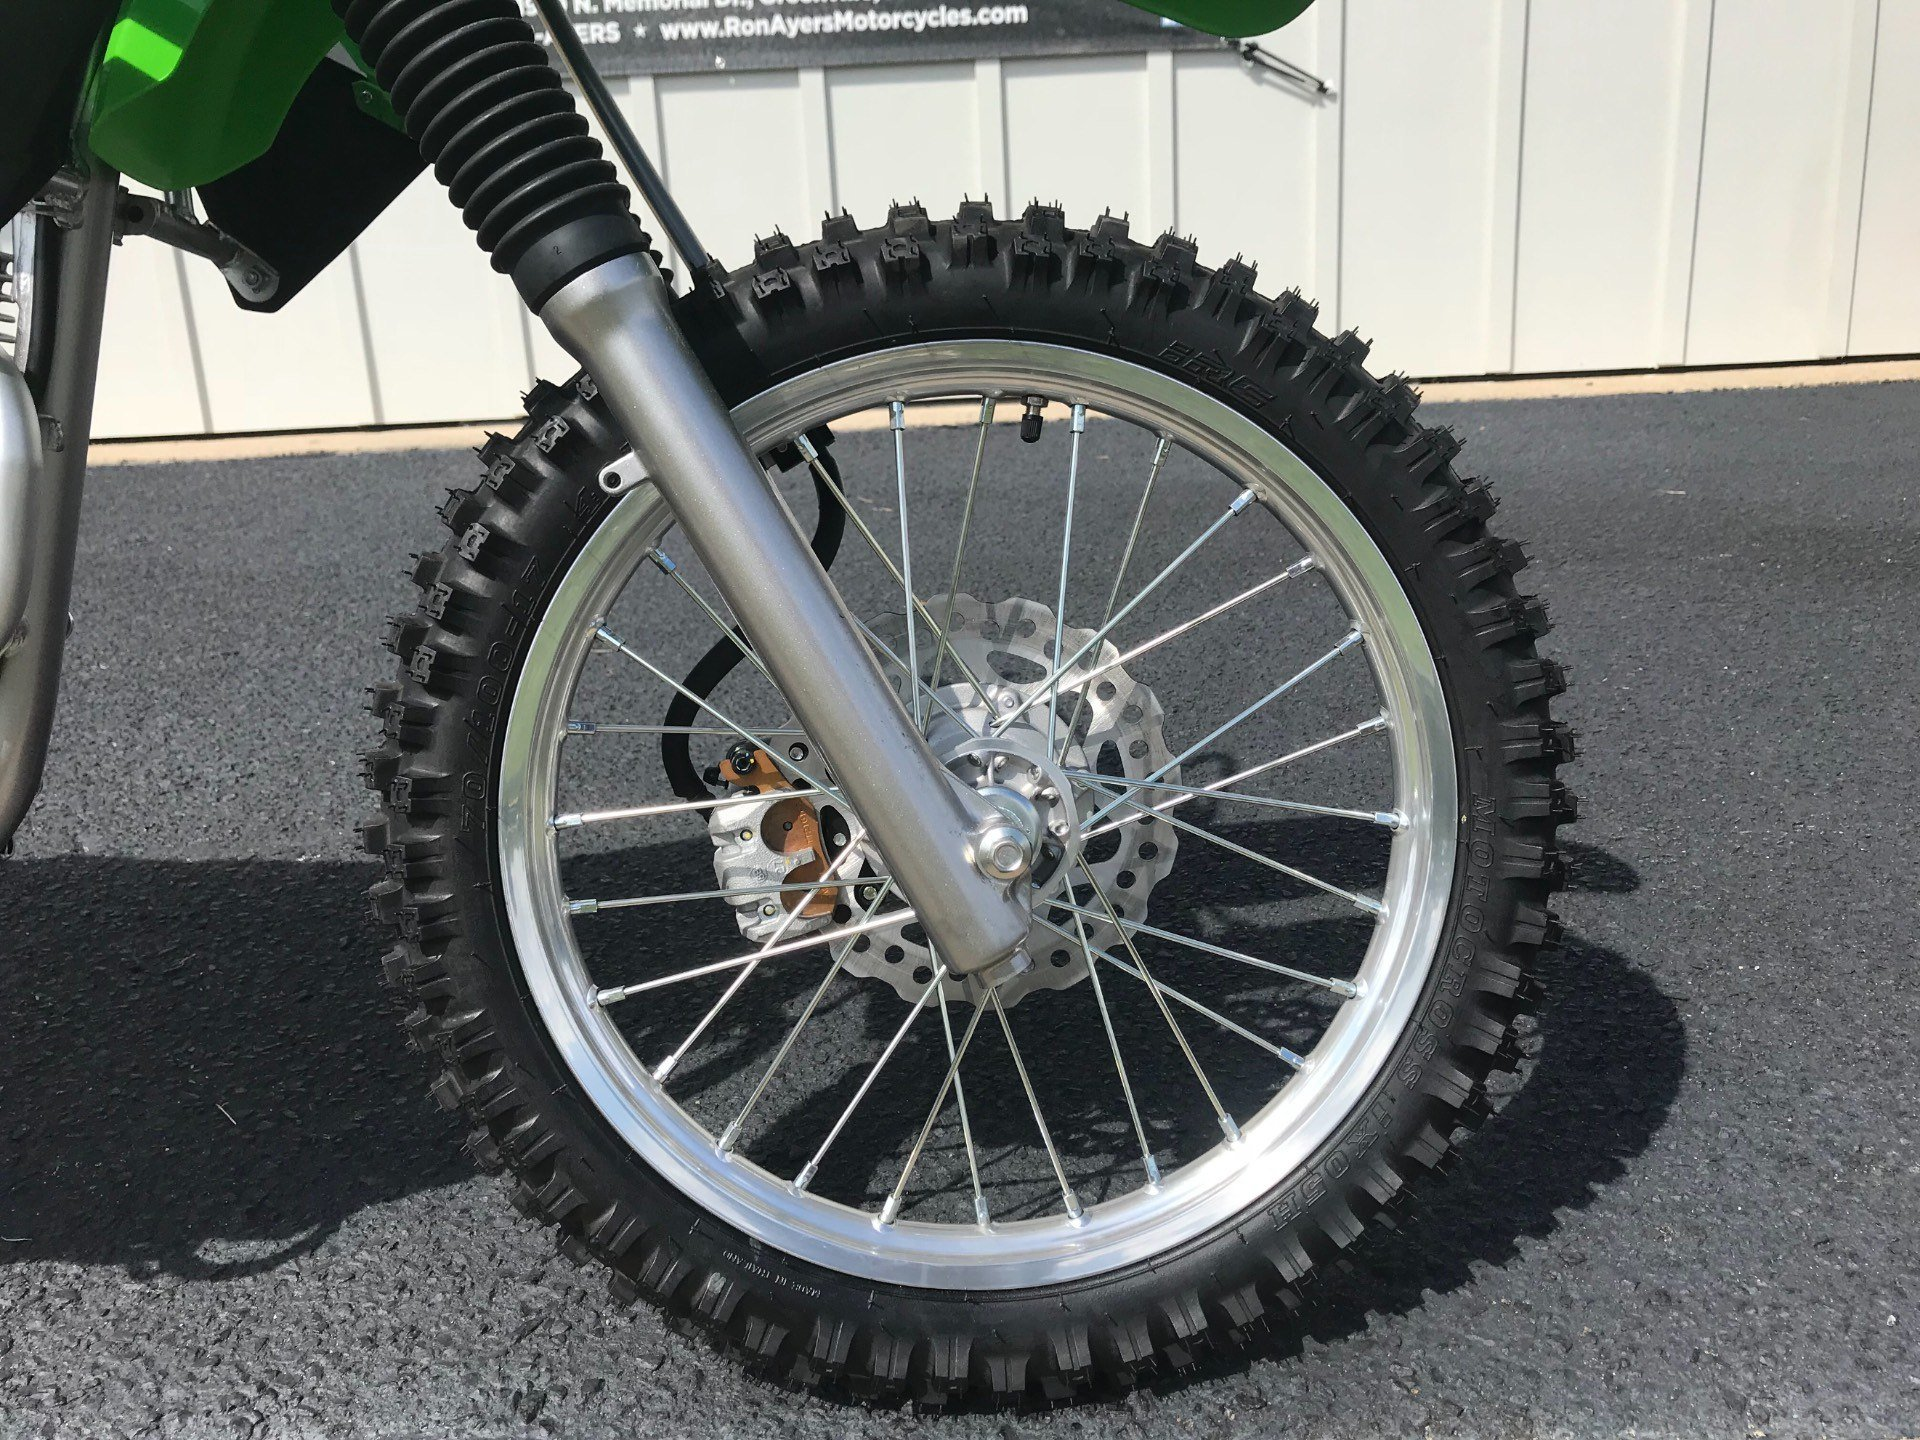 2019 Kawasaki KLX 140 in Greenville, North Carolina